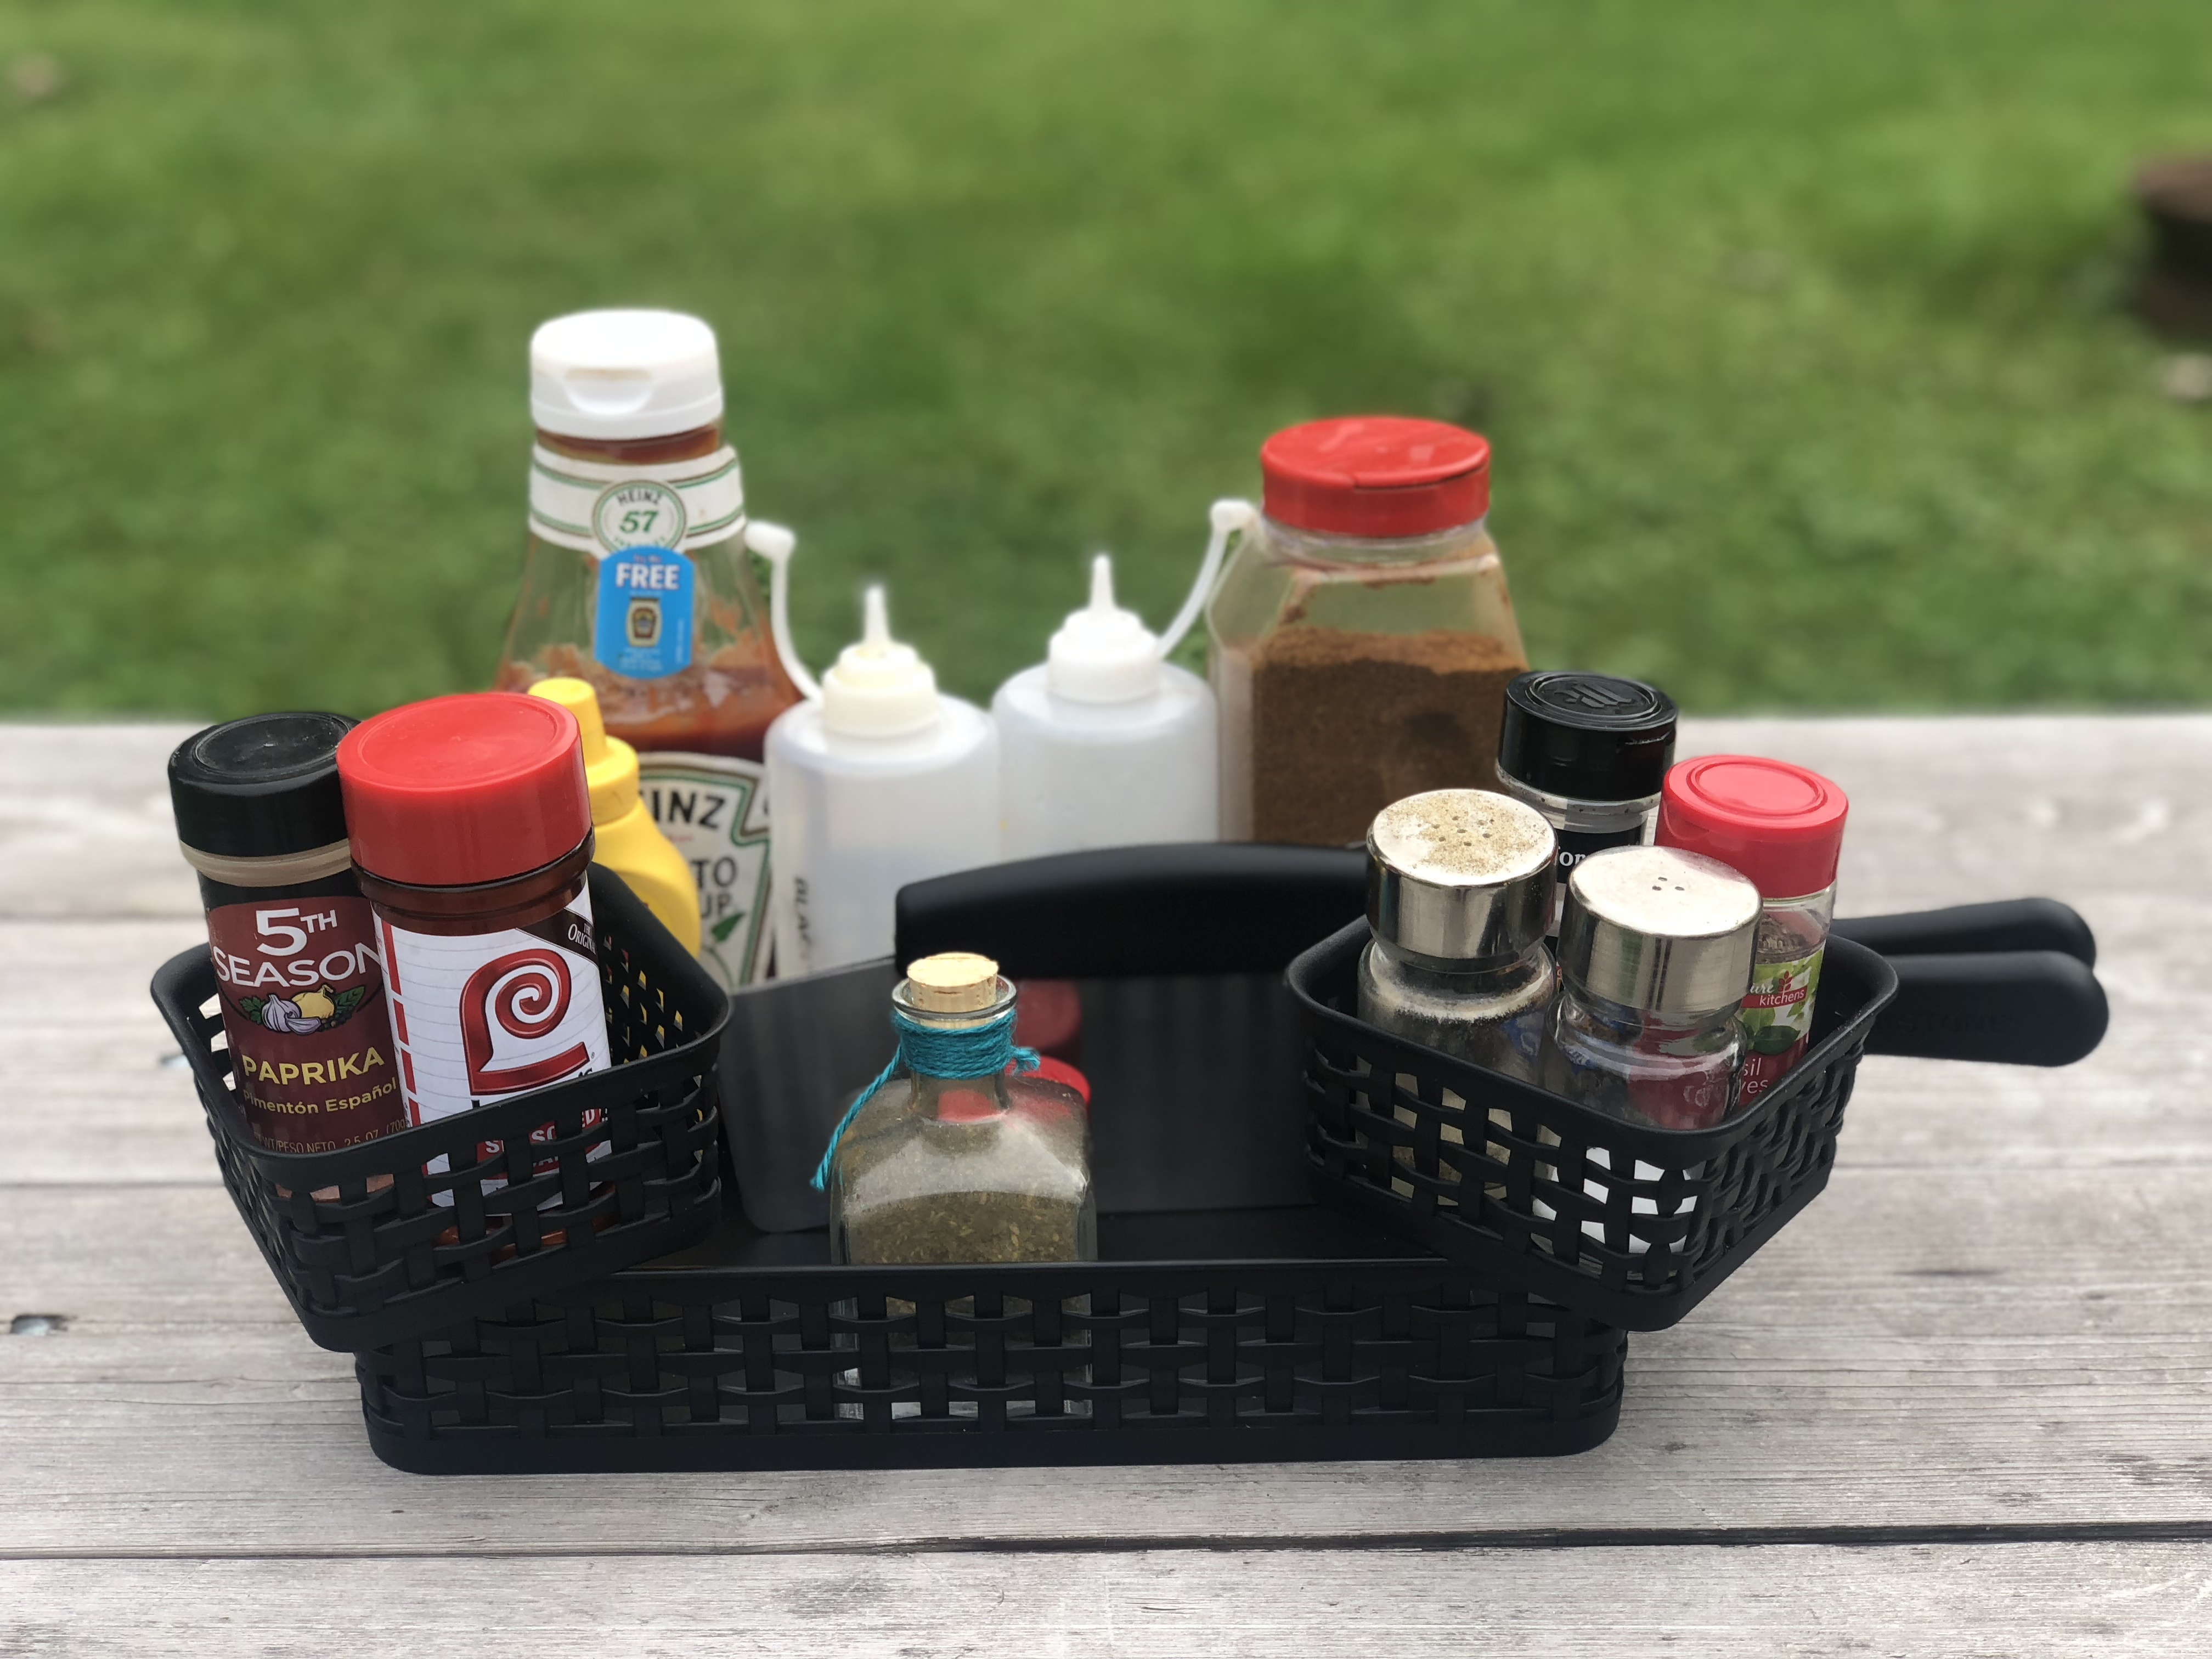 Use a kitchen organizer to store your ingredients when cooking outside